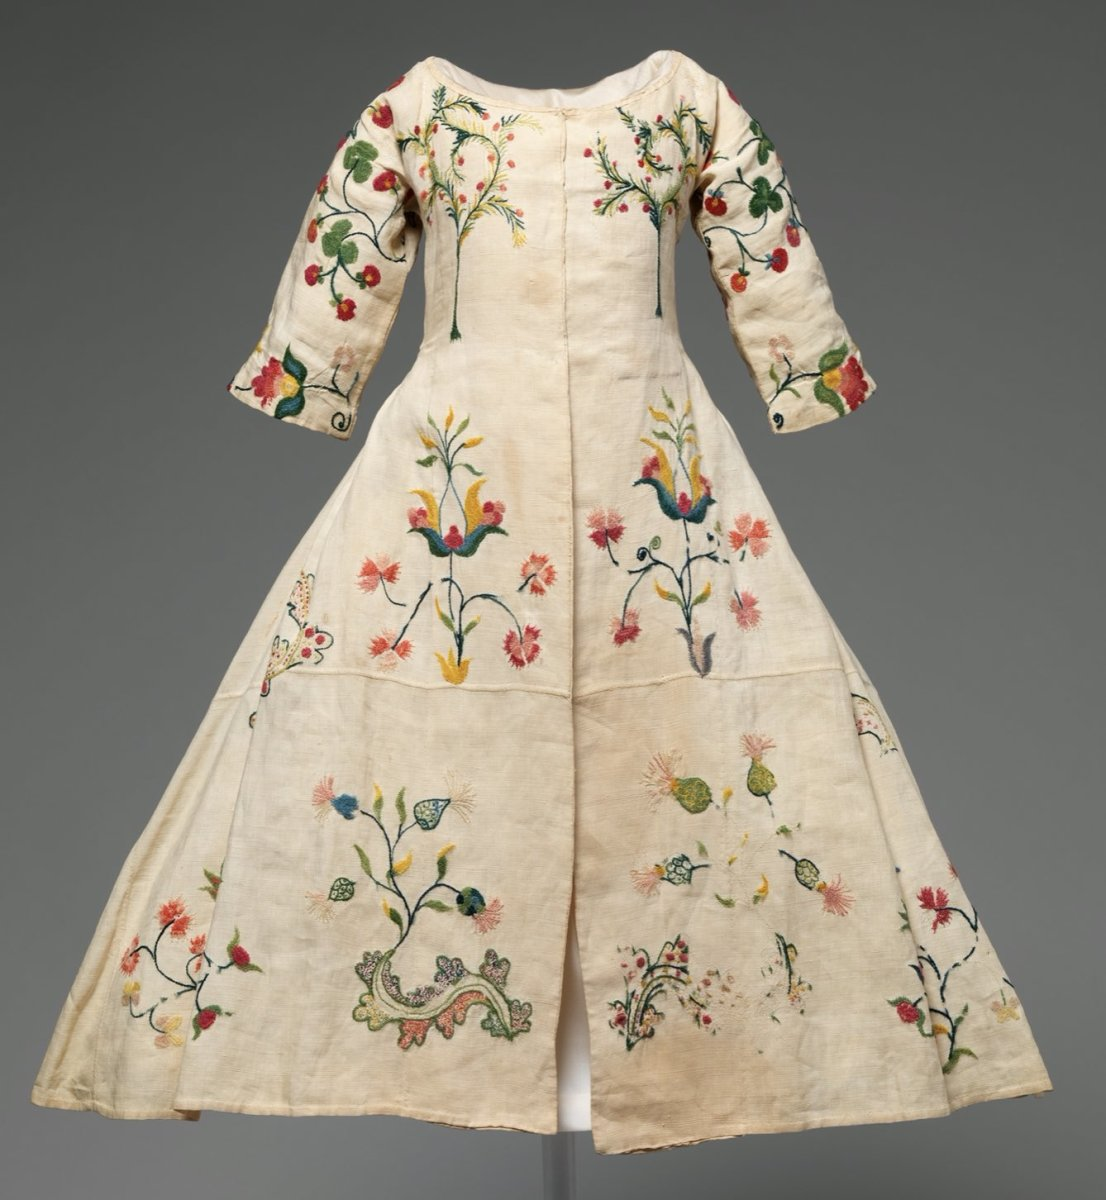 An American-designed child's dress from the mid-18th century has bright wool embroidered on linen of thistles and carnations and mimosa trees, full of hope and joy, with love and protection woven into each and every stitch.